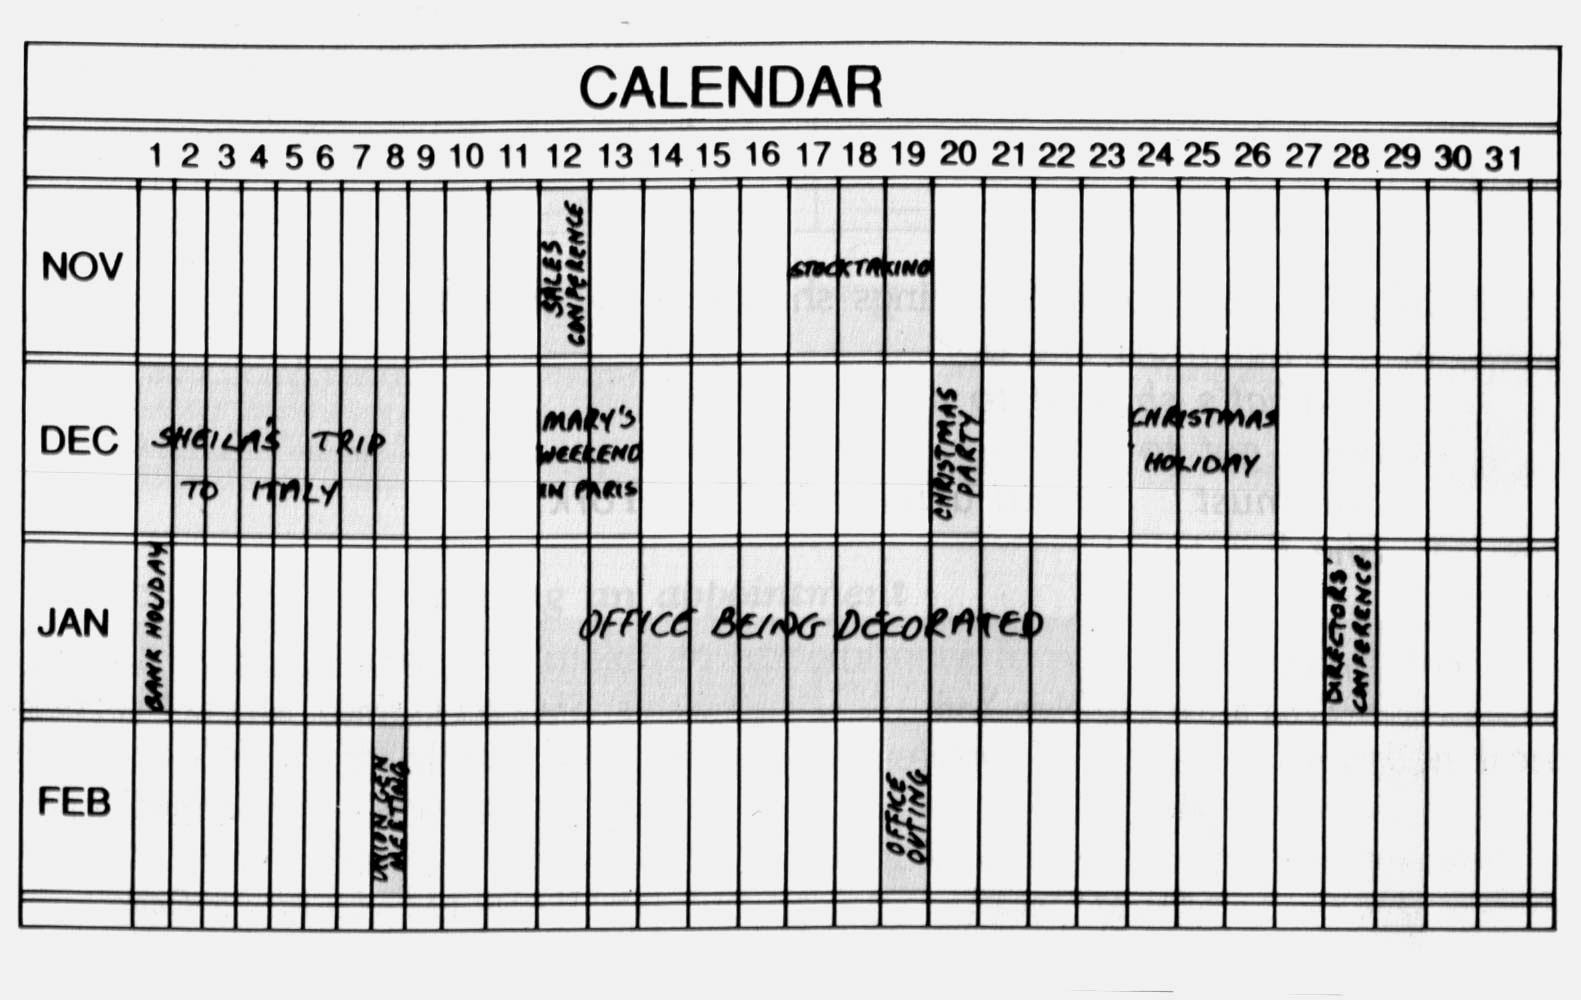 Evening Star Classified Within Cash 3 Midday Yearly Calendar